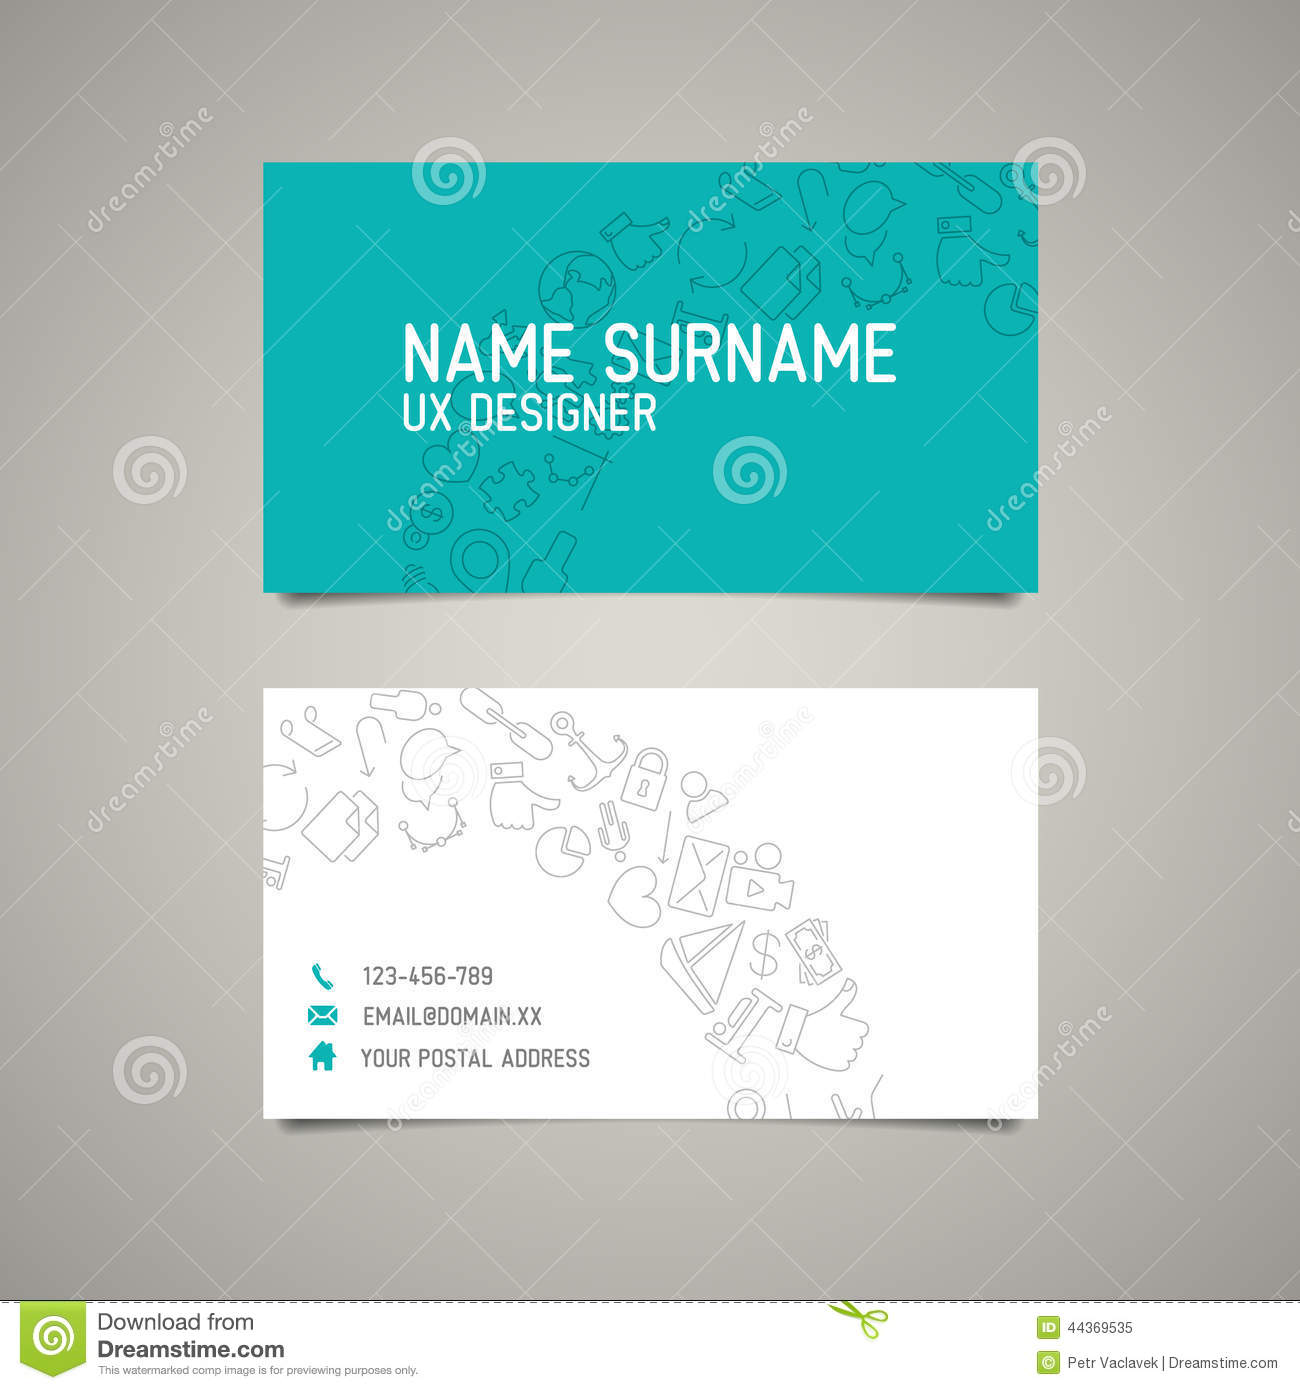 Exelent business card maker download inspiration business card business card designer plus download business card template creator fbccfo Images